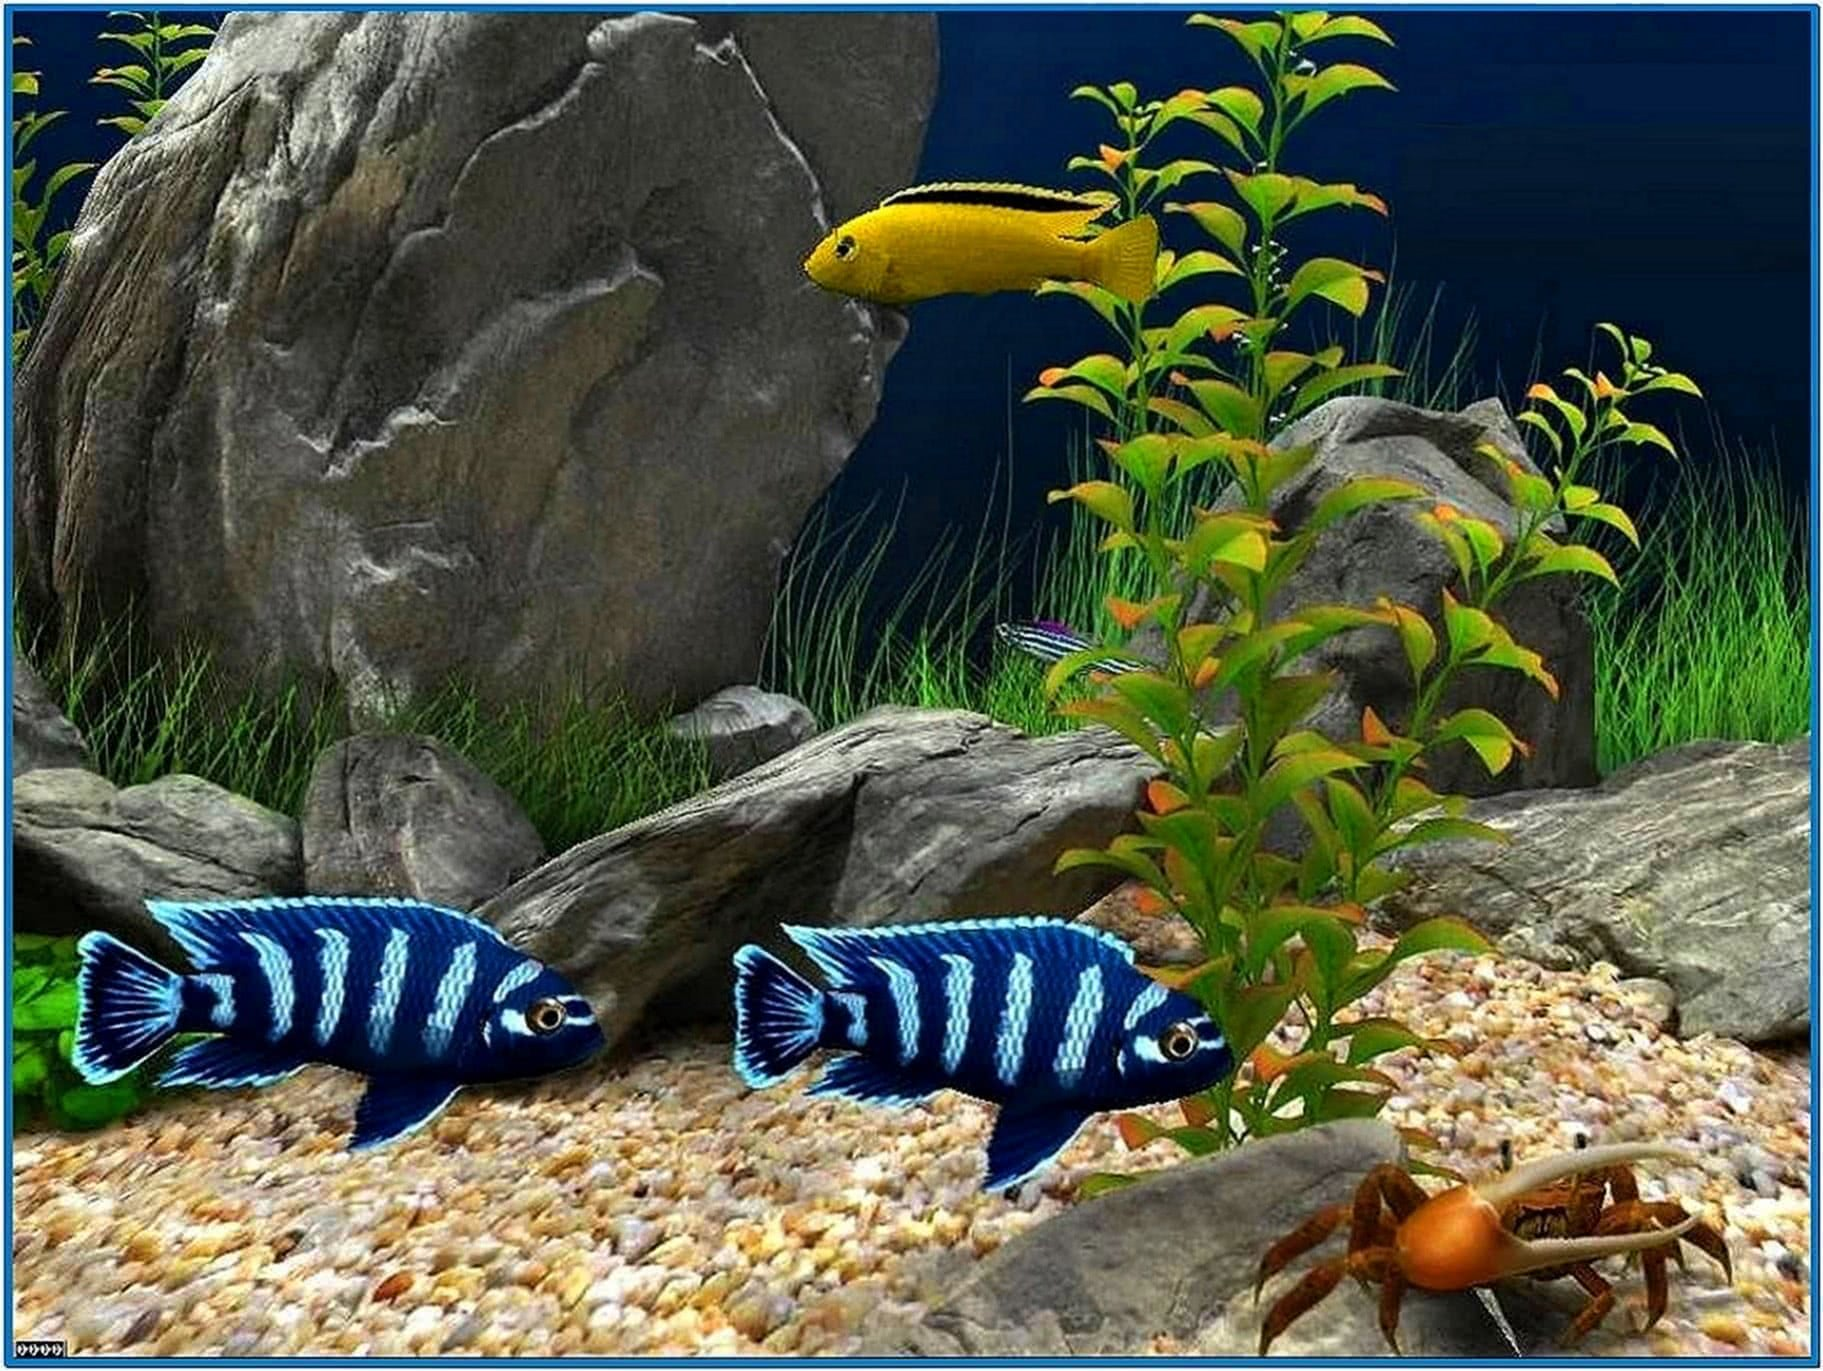 Dream Aquarium Screensaver for Android